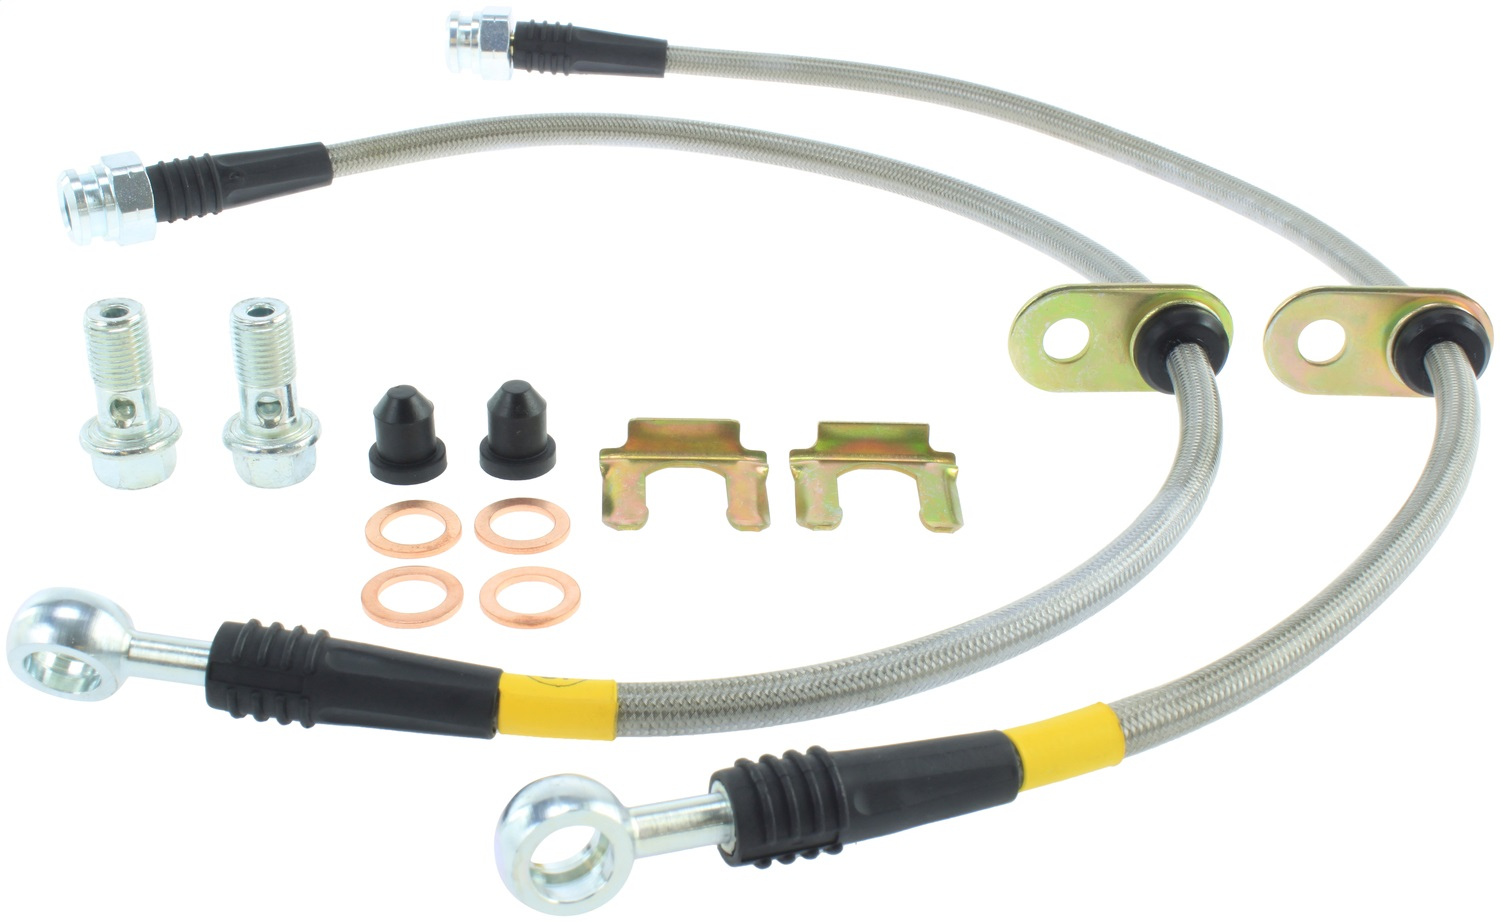 StopTech 950.47005 Stainless Steel Braided Brake Hose Kit Fits 00-09 Legacy